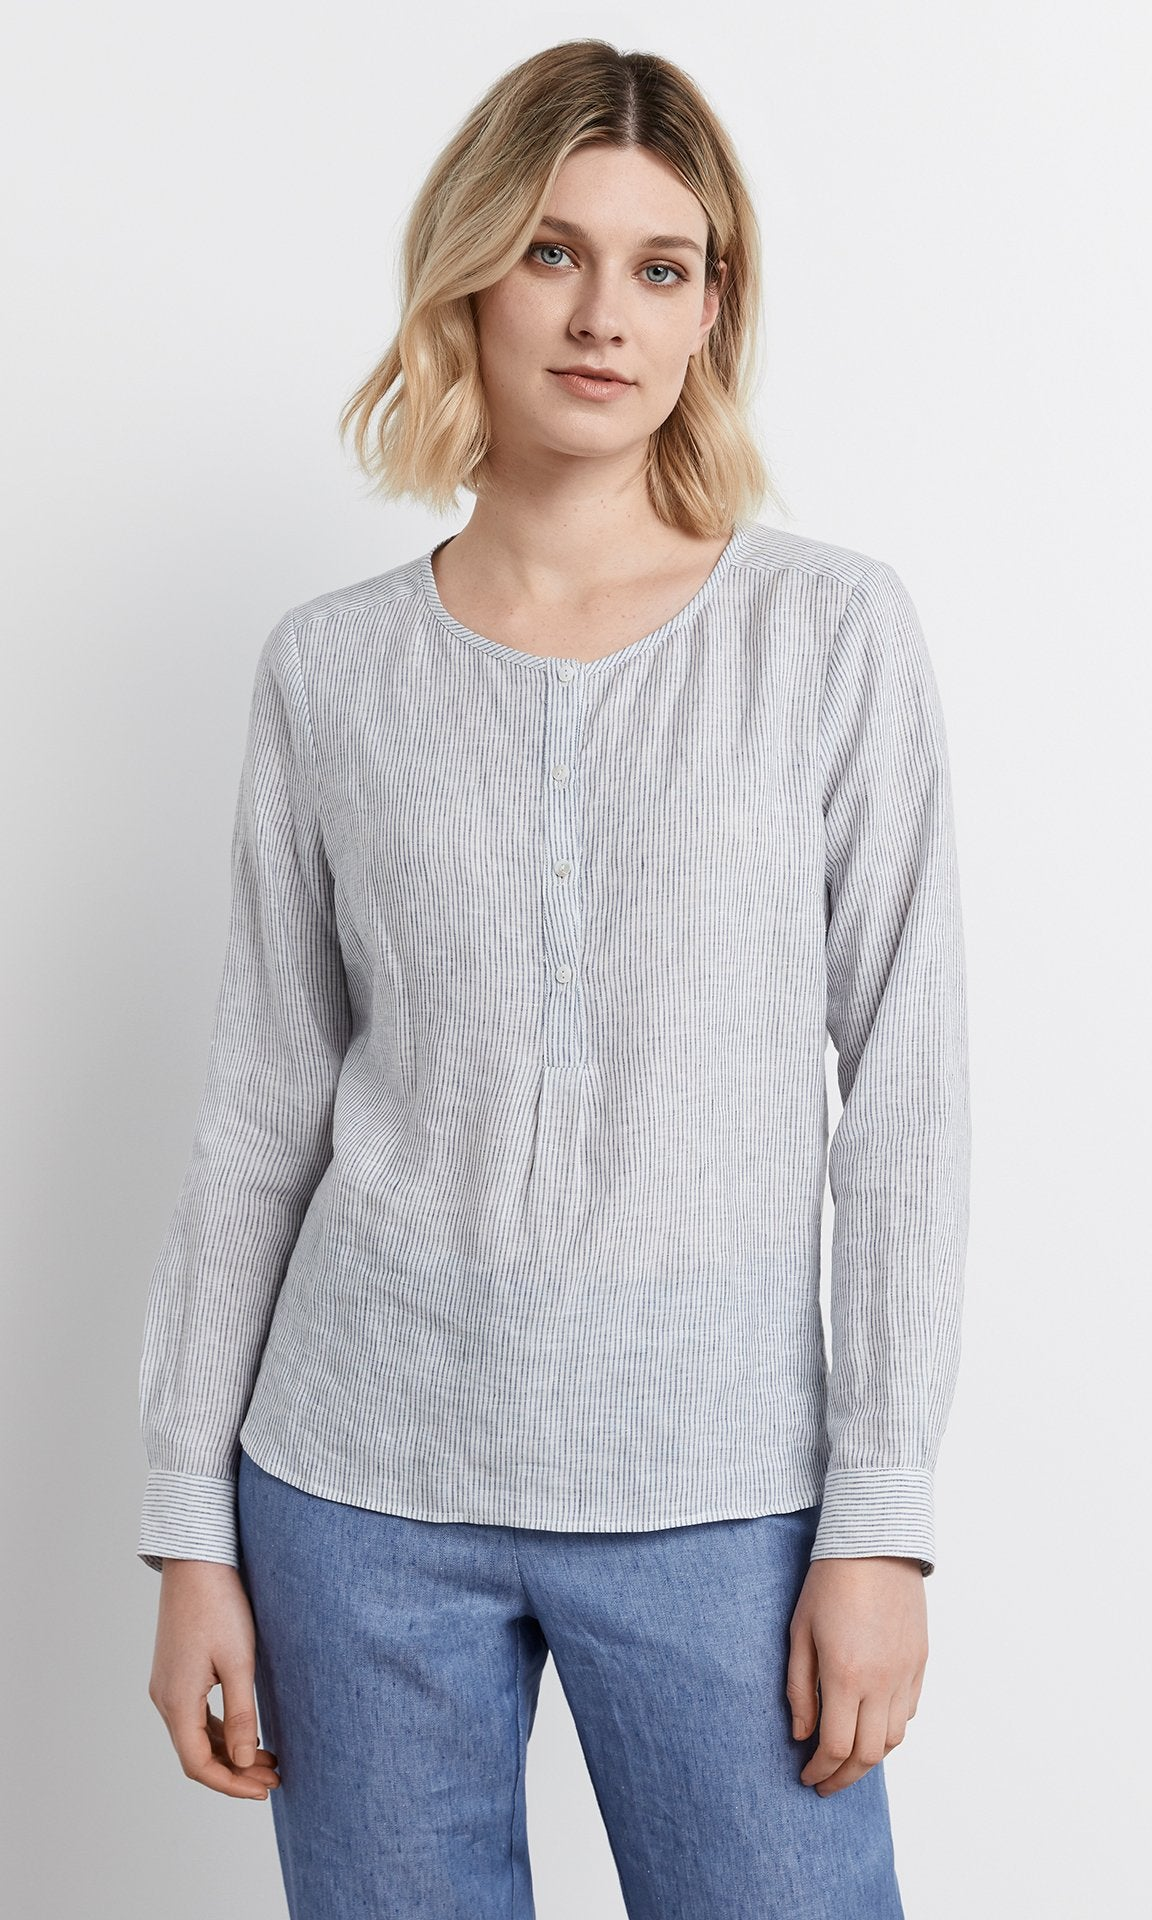 Barrettini Top - Blue